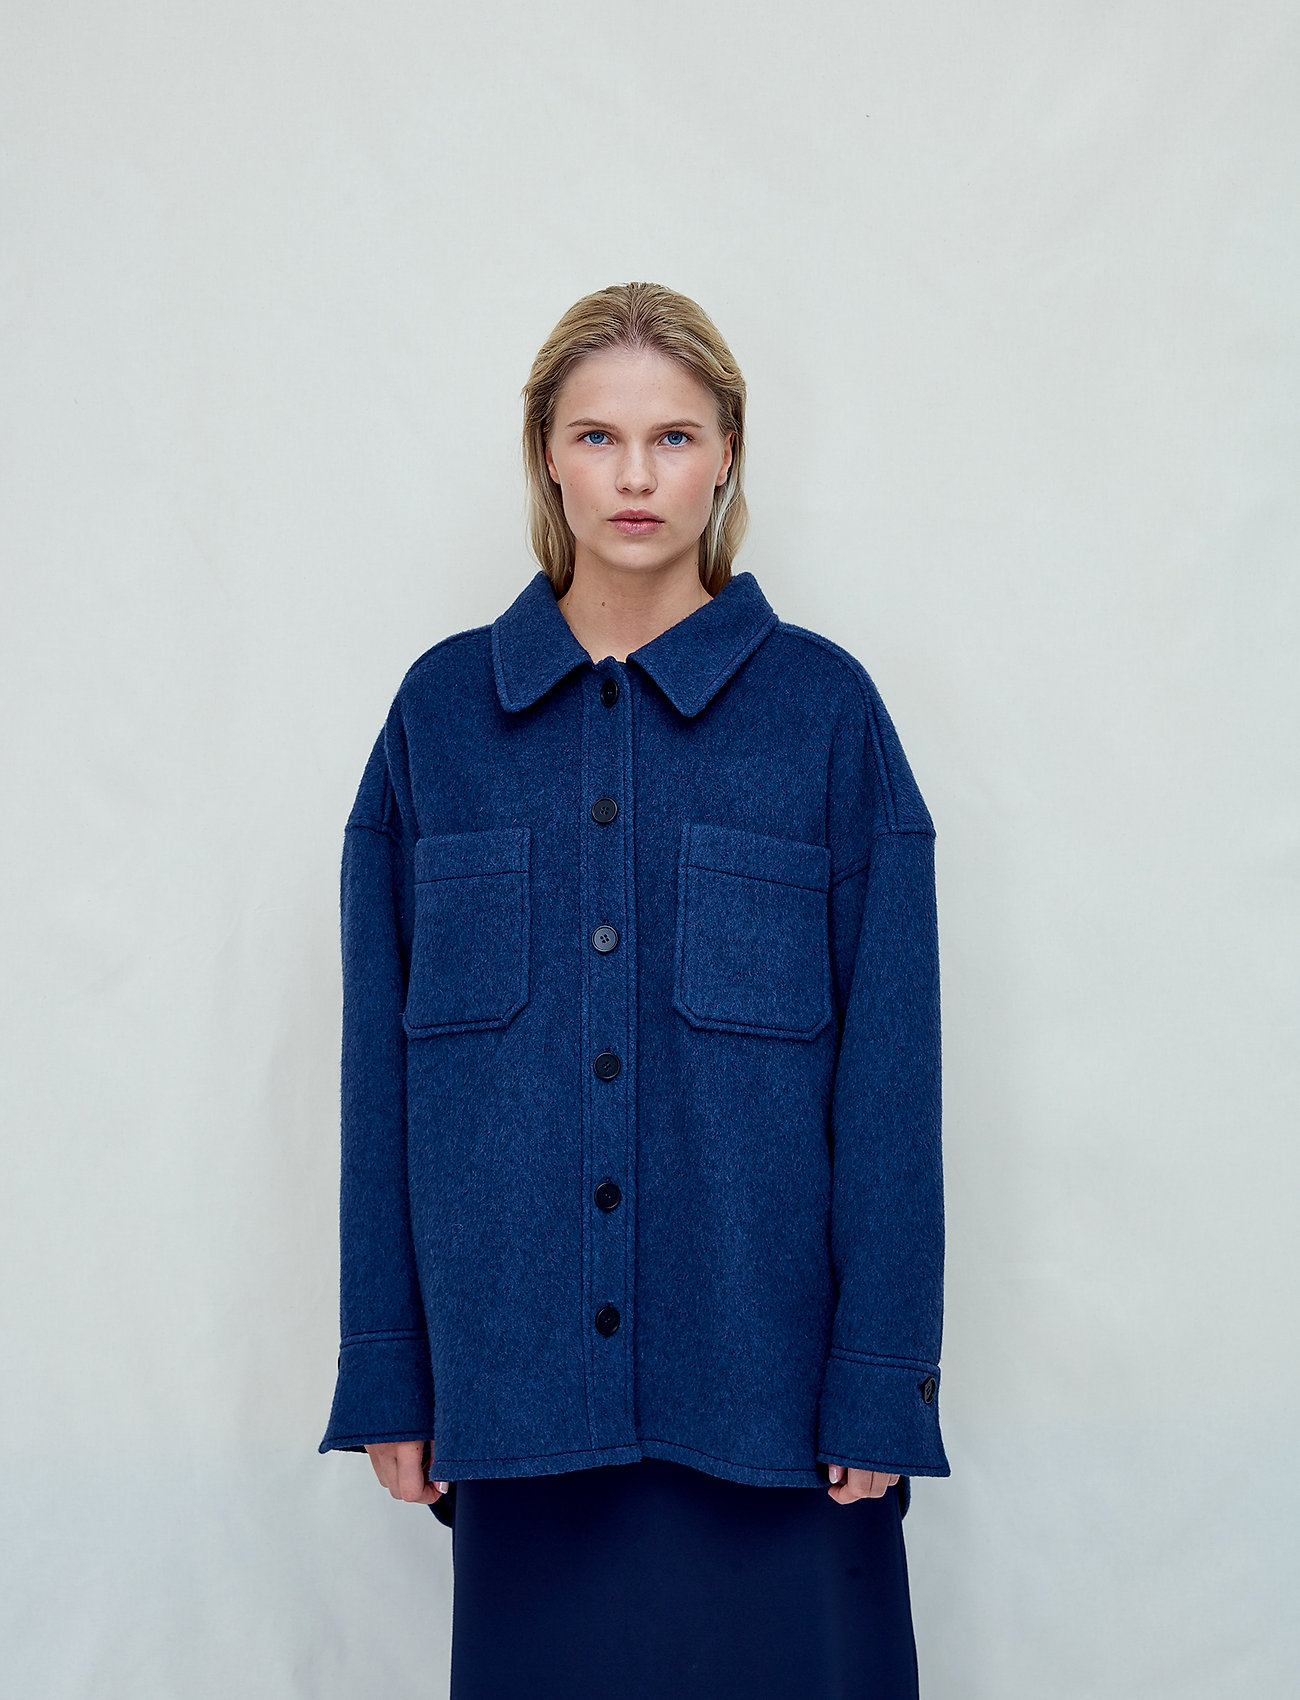 Fall Winter Spring Summer - Sealiner Wool - overshirts - blue nights - 0